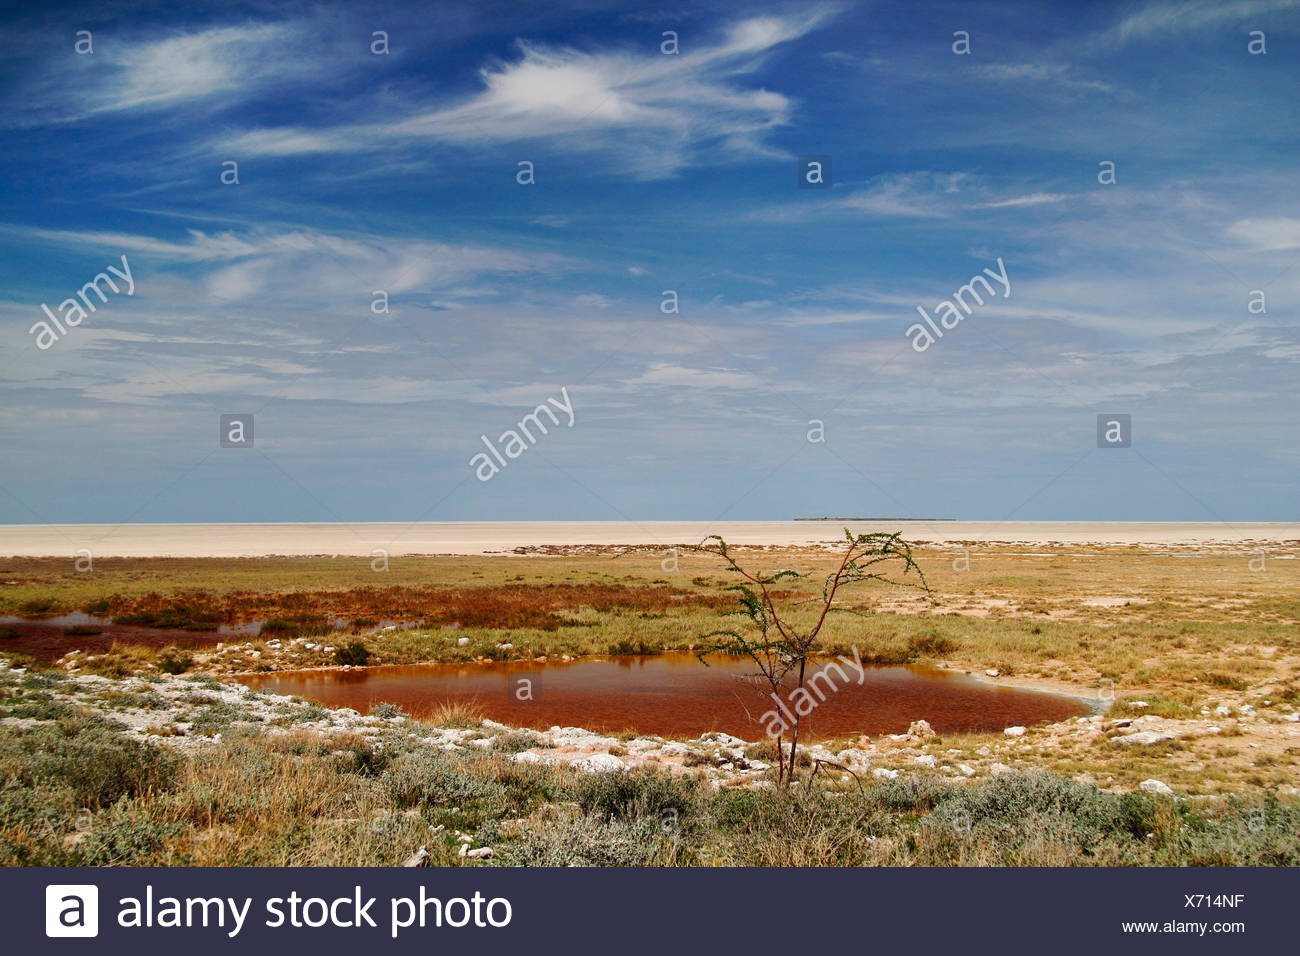 waterhole at the border of the salt pan, Namibia, Etosha National Park - Stock Image